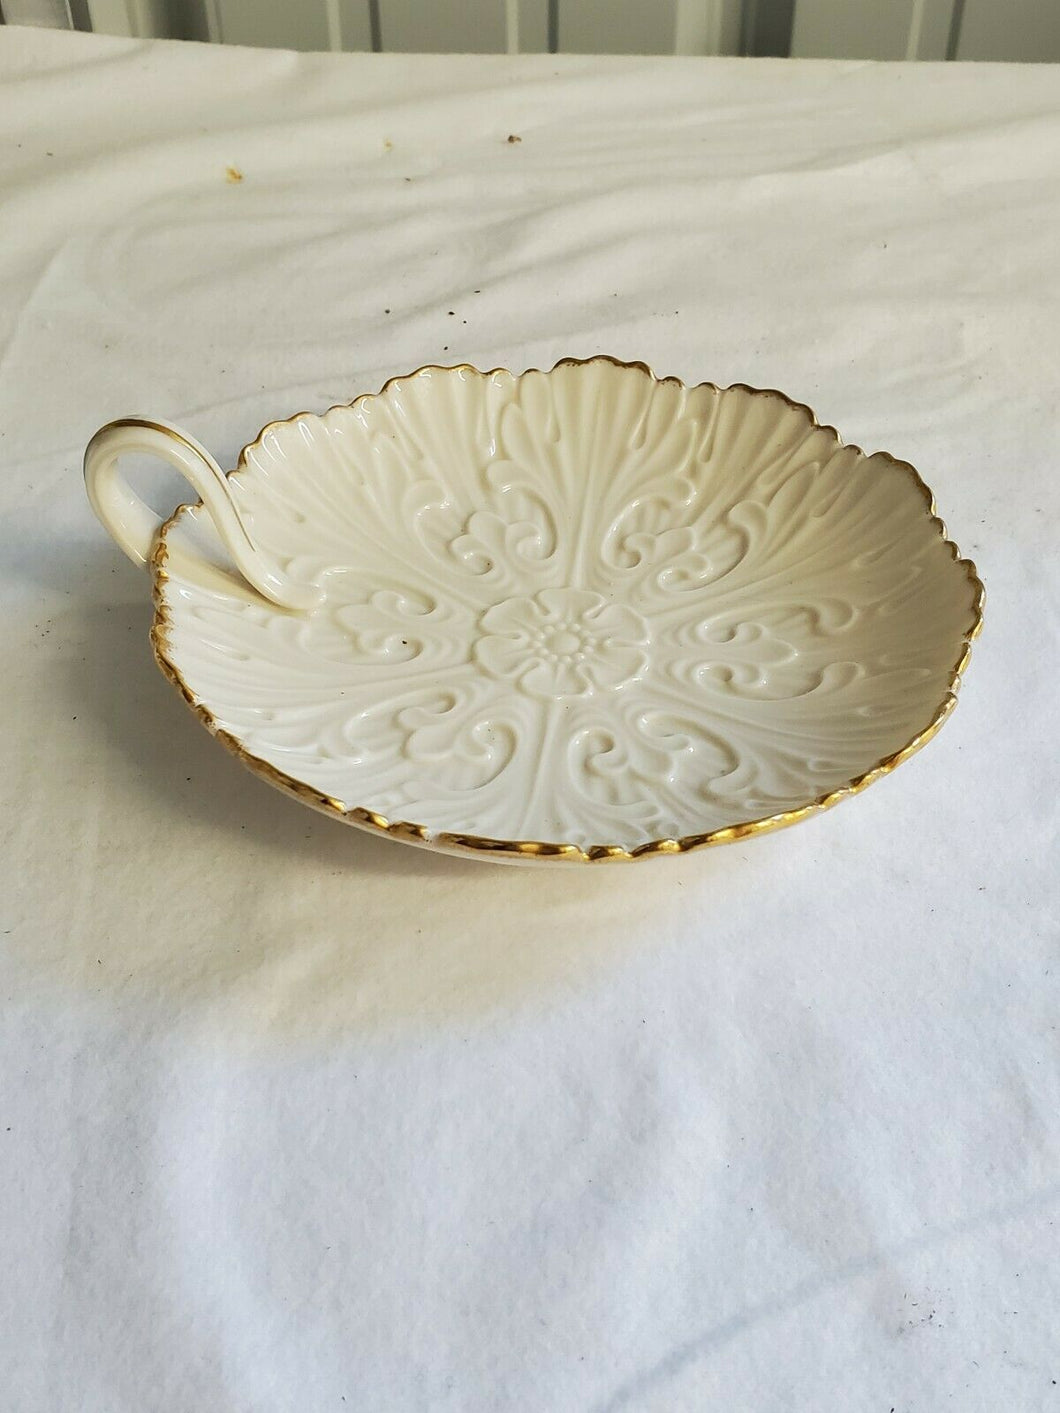 Lenox Ivory China Raised Floral Design Plate With Handle